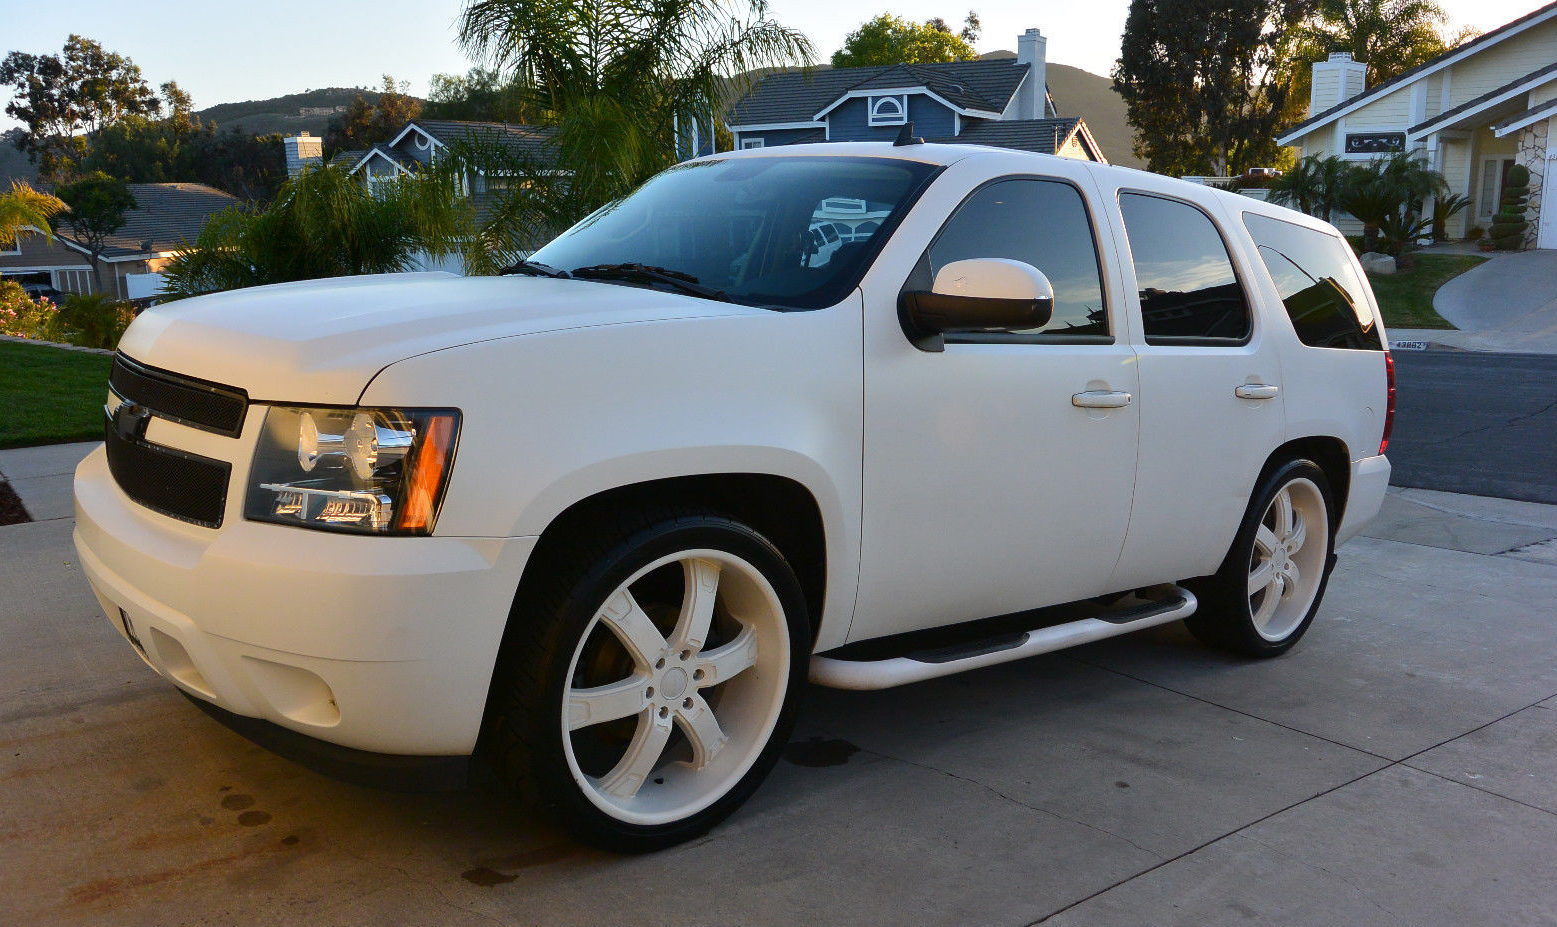 Rob Dyrdek\'s Old Chevrolet Tahoe For Sale on eBay | Celebrity Cars Blog